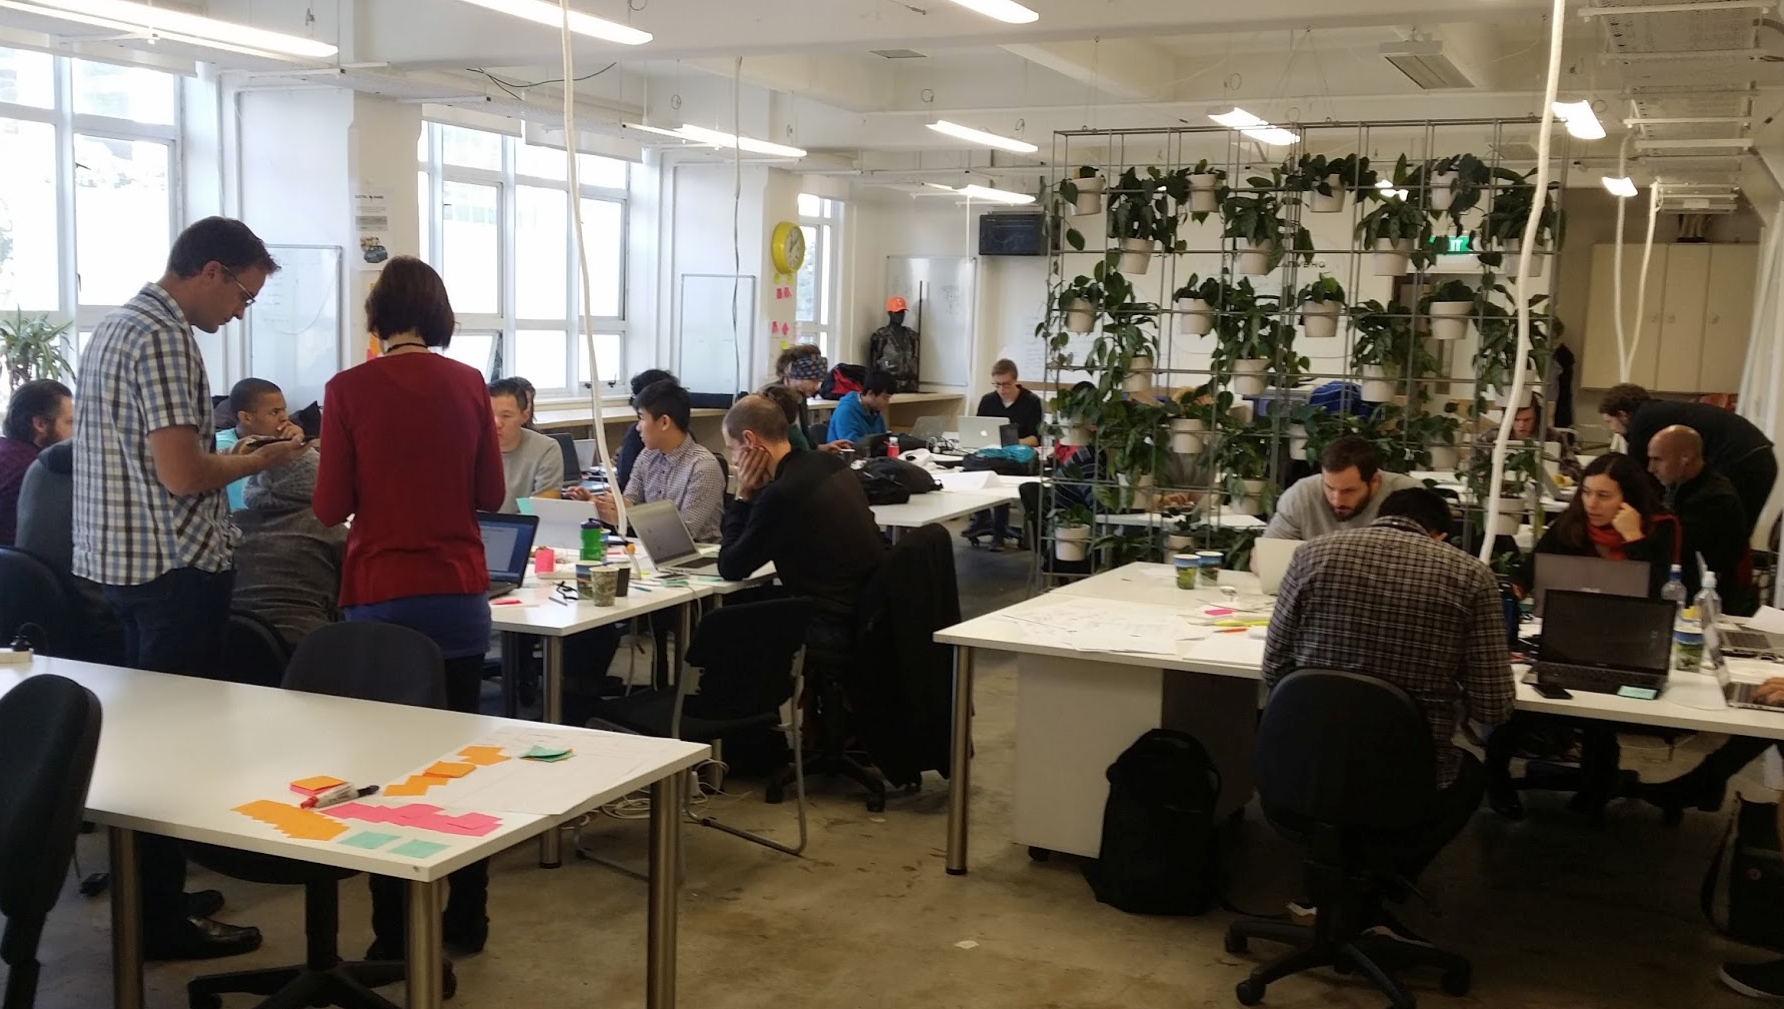 Startup teams hard at work on Sunday afternoon.